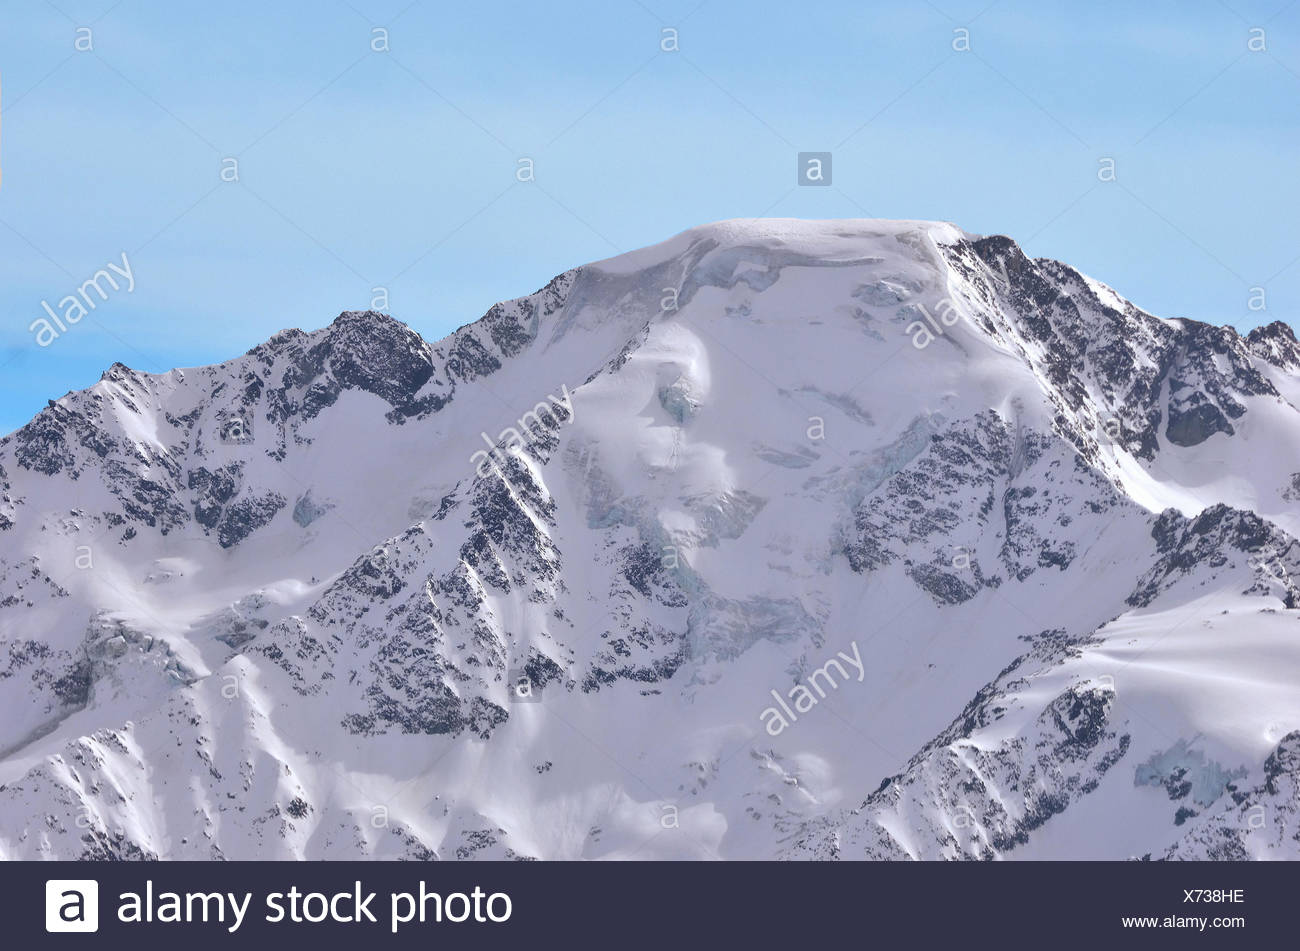 One of the highest alpine peaks, the north east face of the Grand Combin on the Swiss - Italian border, near to Verbier. Viewed f - Stock Image